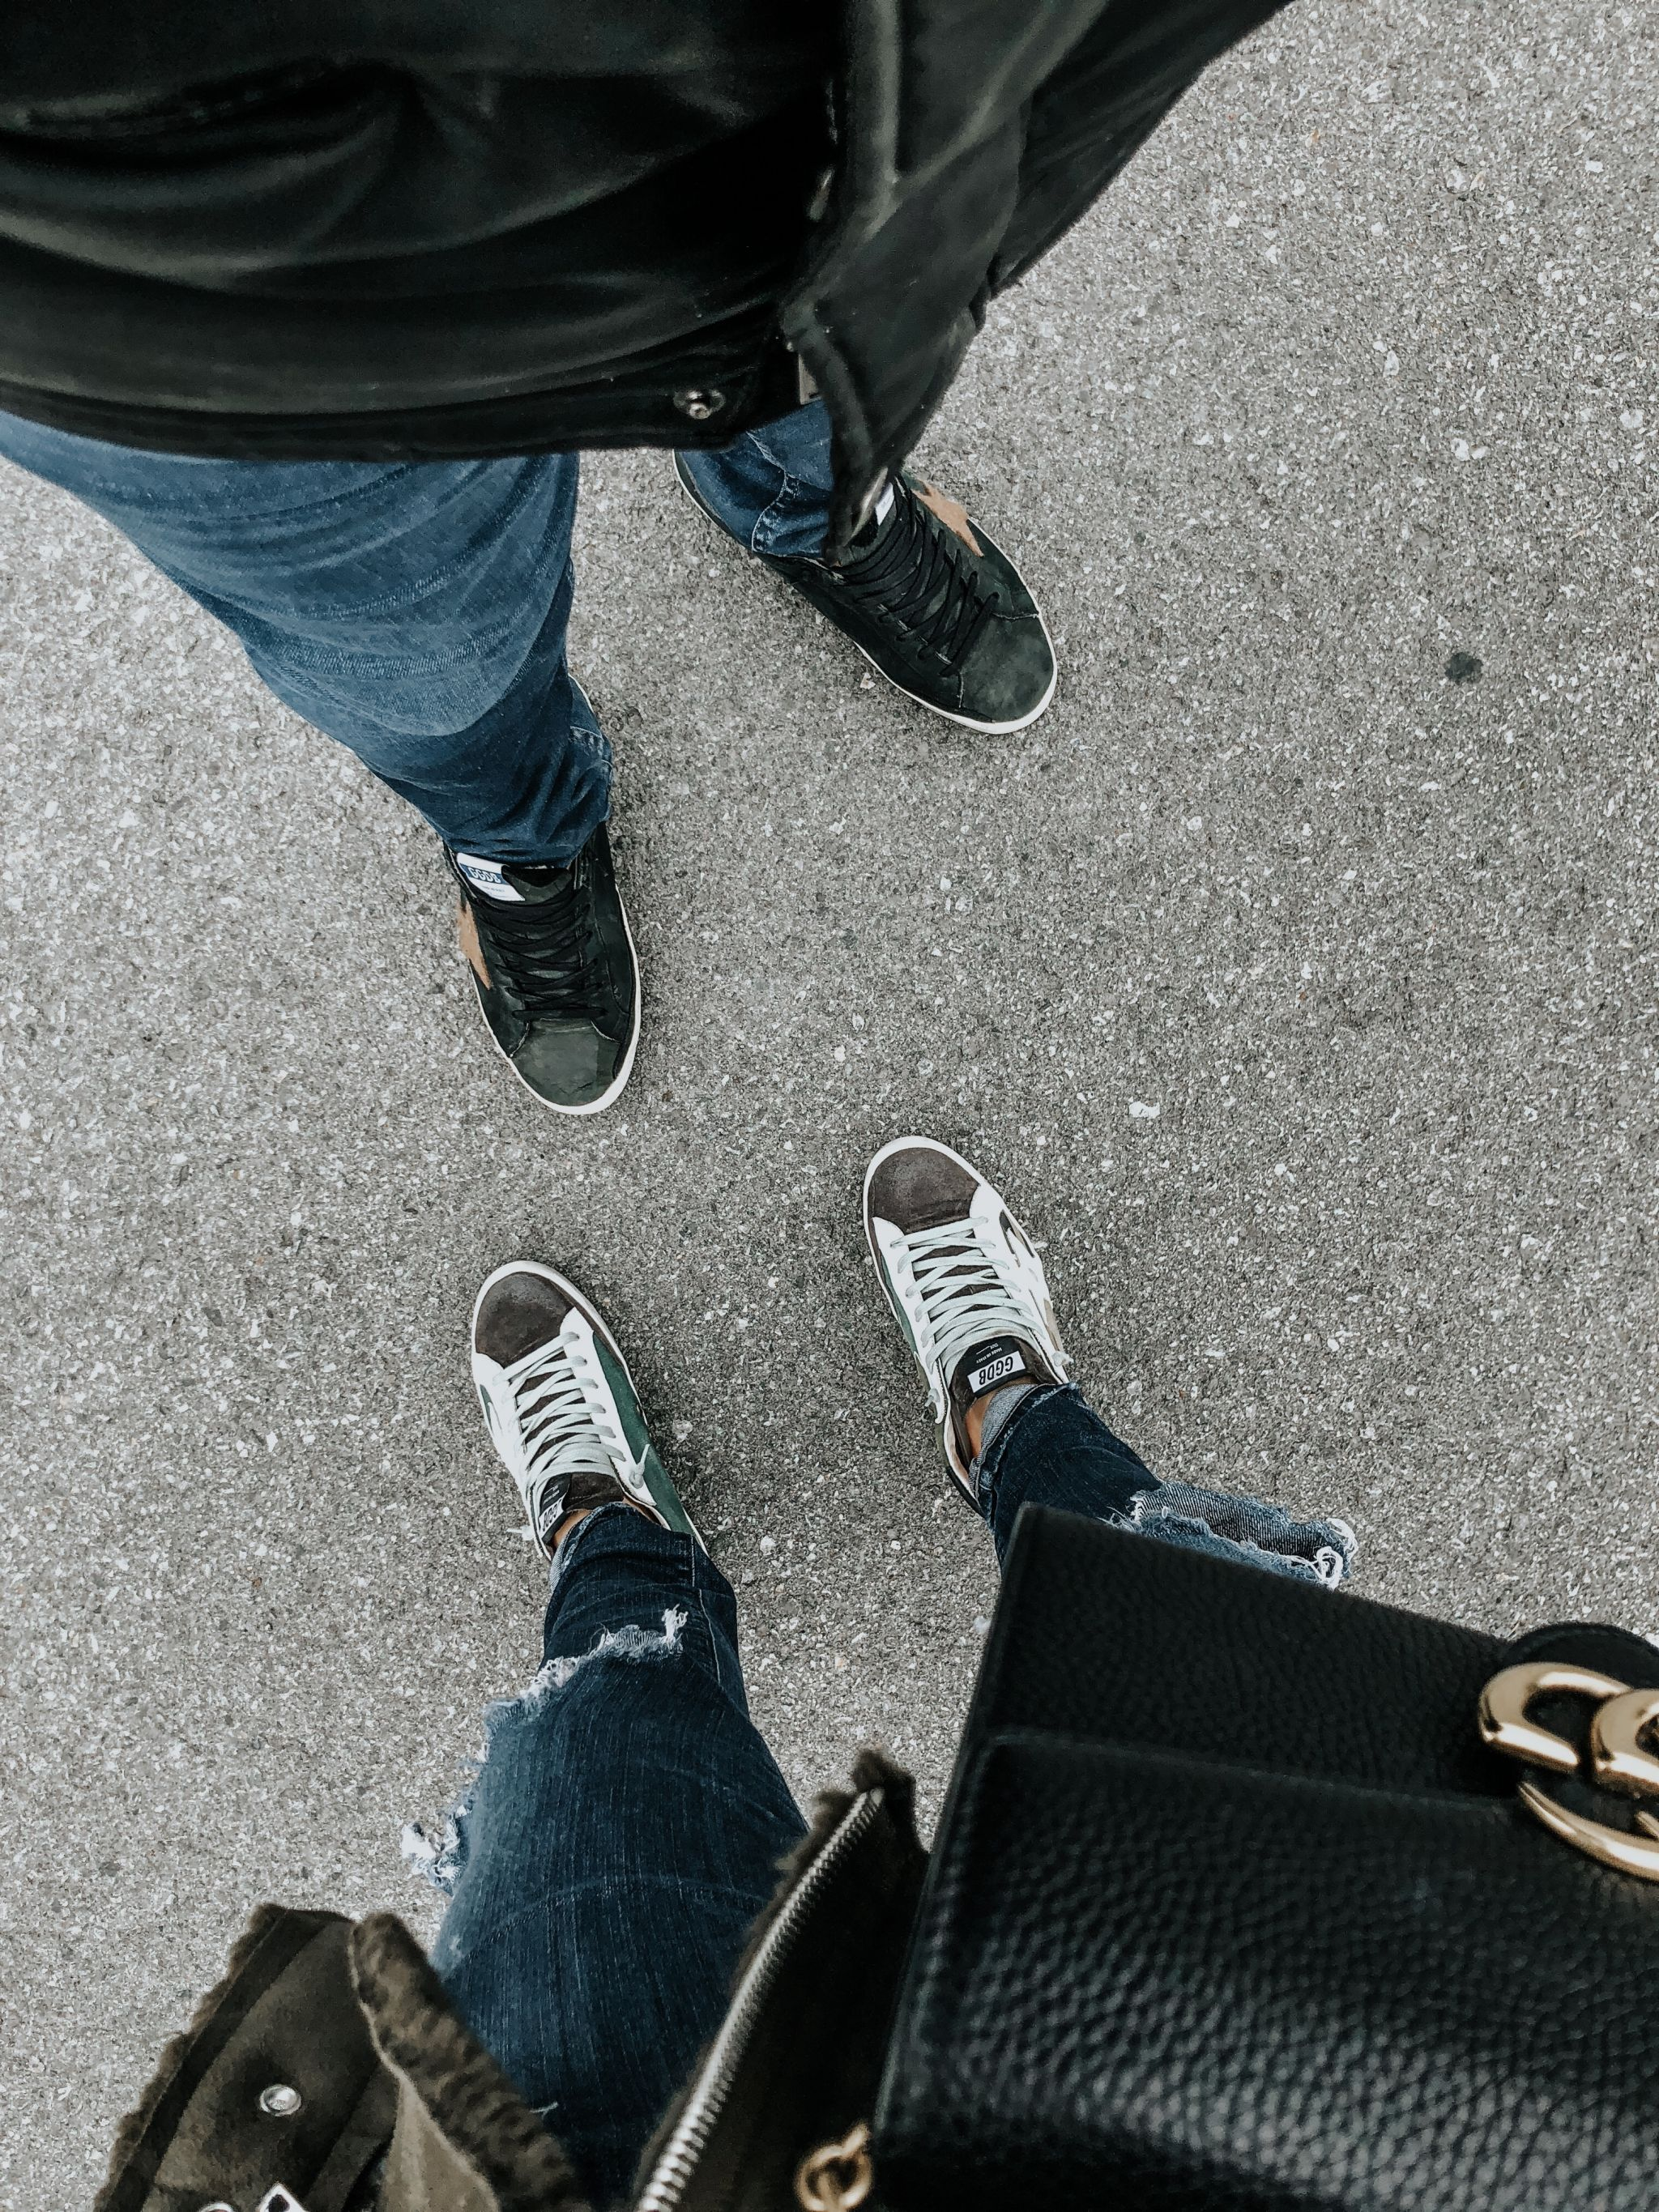 2 people, from where I stand, matching golden goose shoes